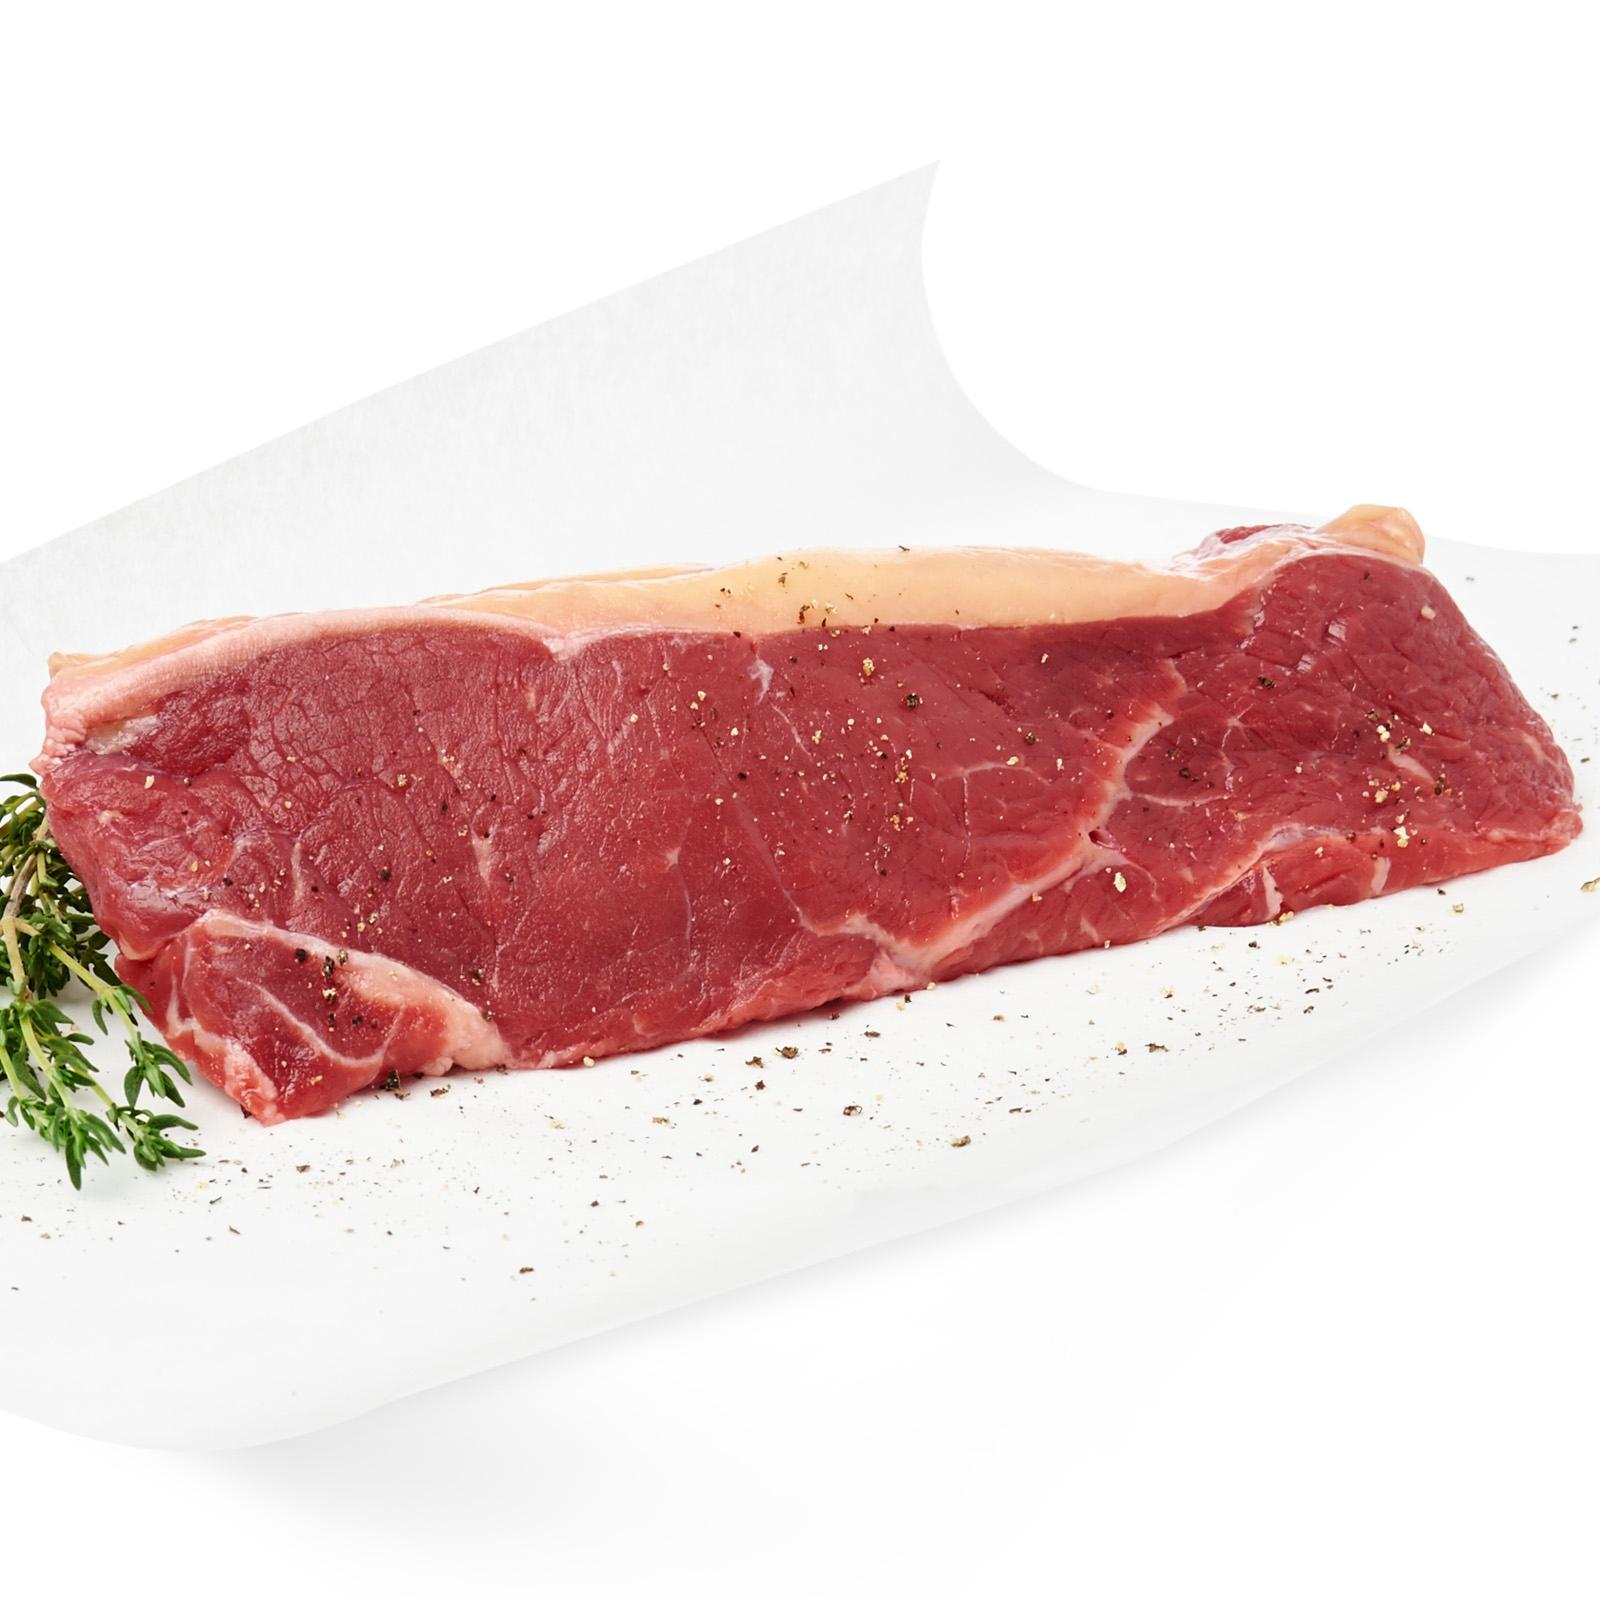 Zac Meat Grass Fed Angus Striploin - New Zealand By Redmart.